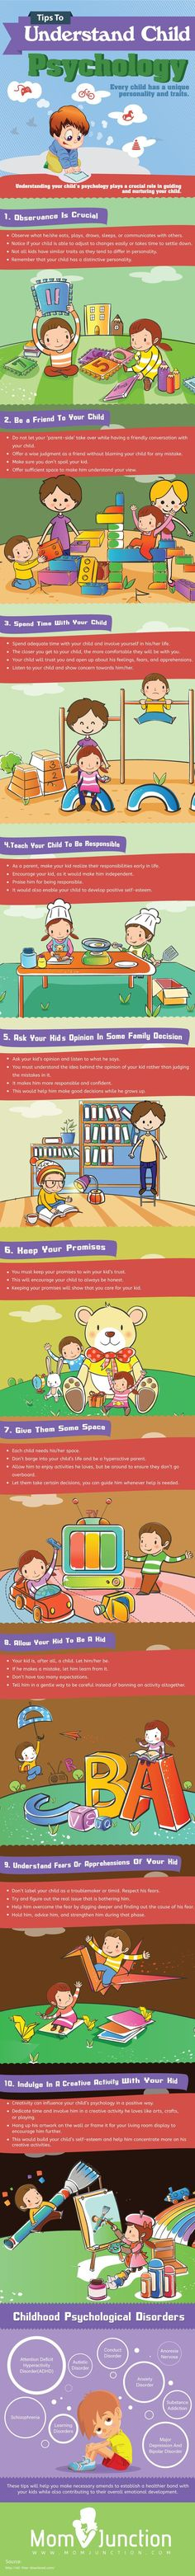 How To Understand Child's Psychology? #Infographic